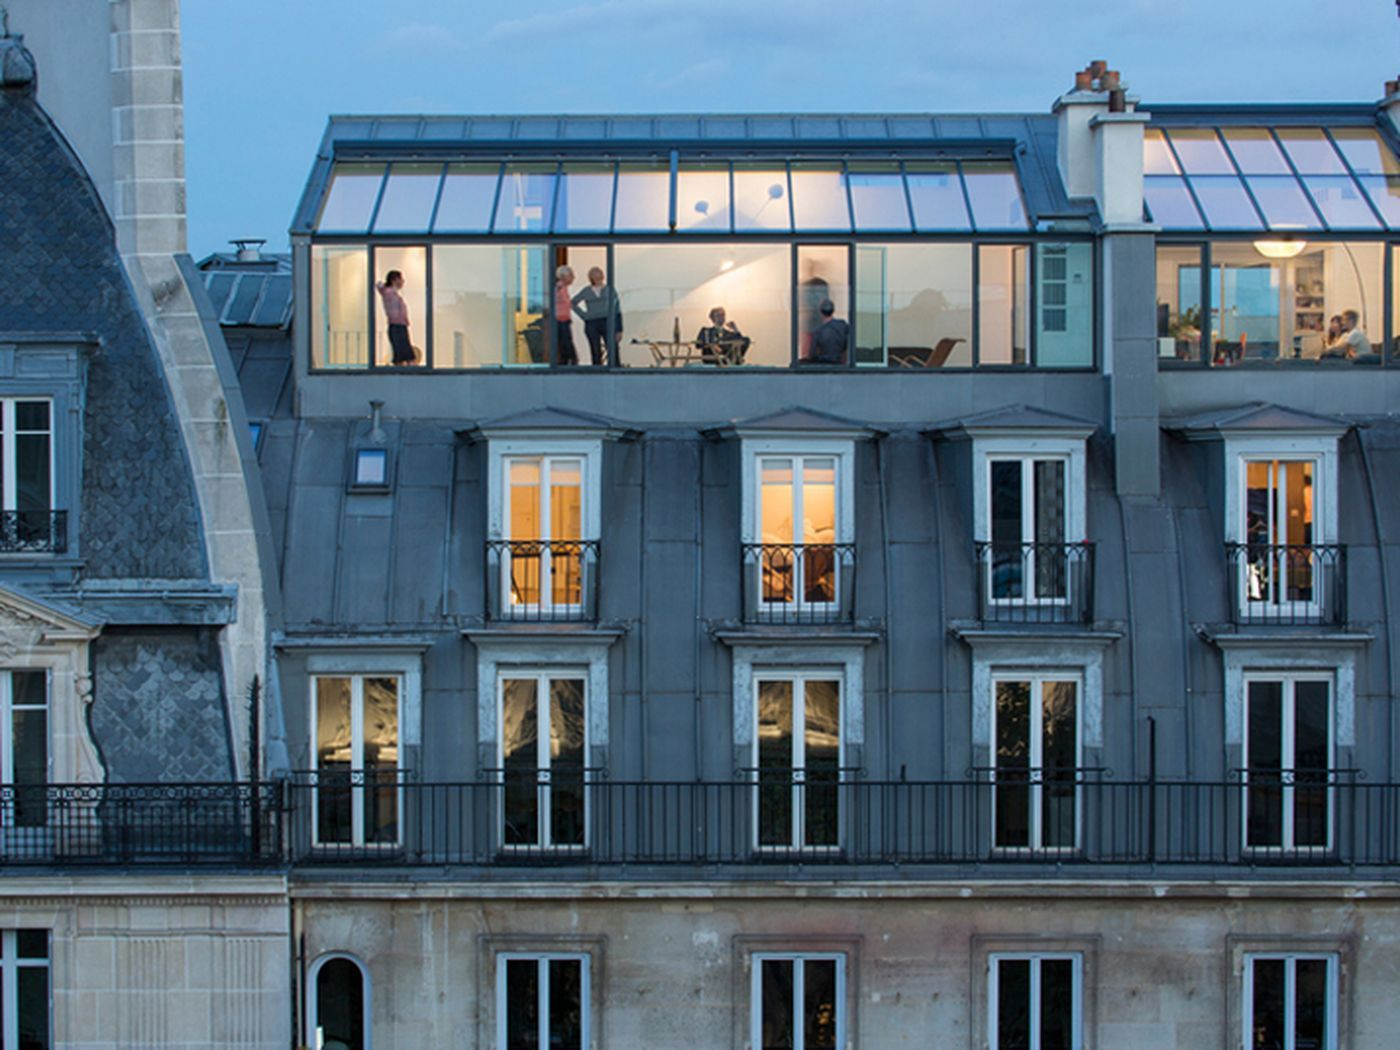 Paris Apartments Modern And Airy Used To Be A 19th Century Photo Studio Roof Architecture Apartment Architecture Architecture Building